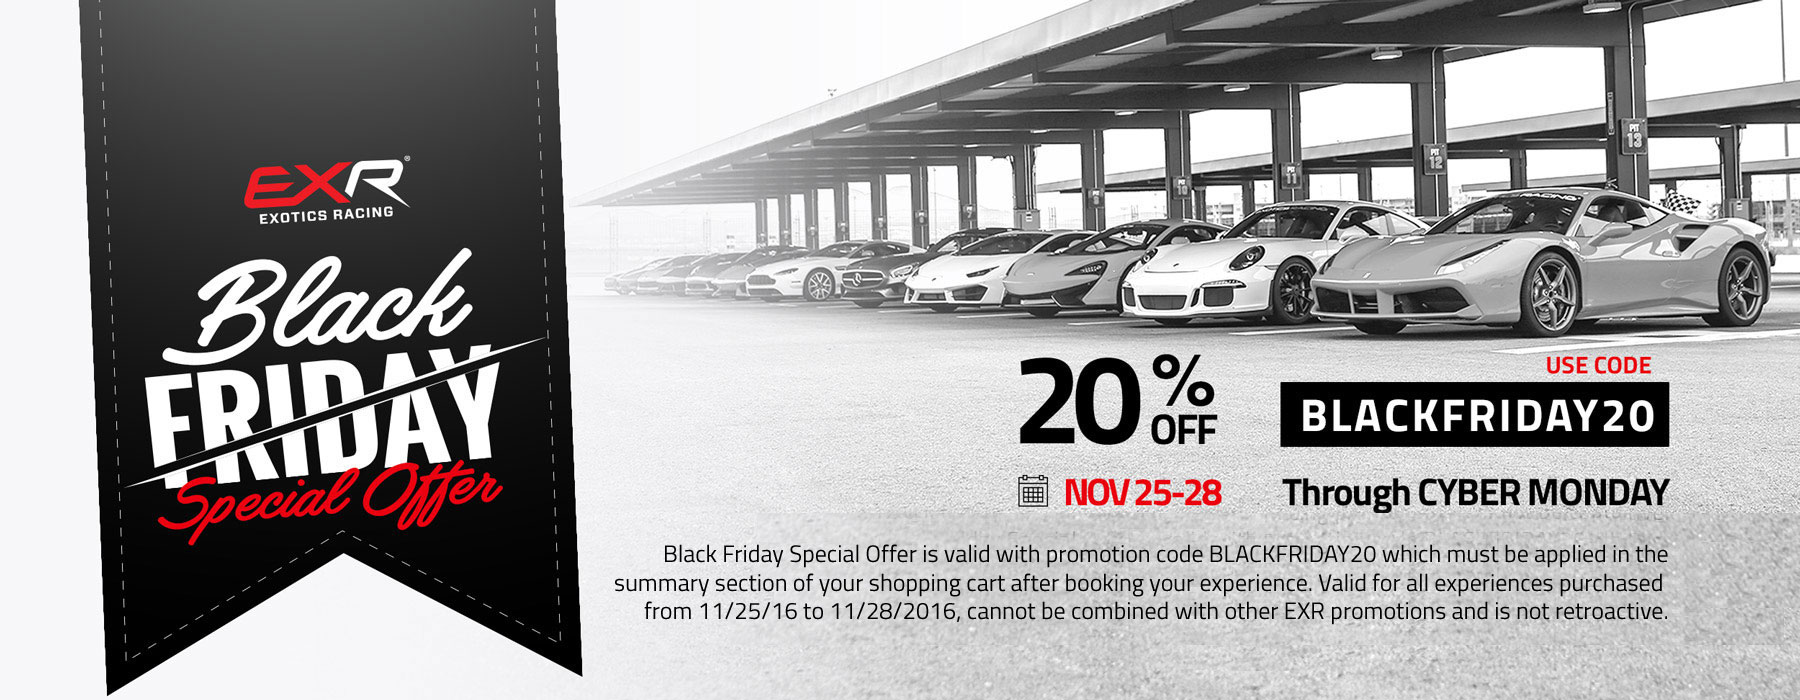 Black Friday 2016 Offer